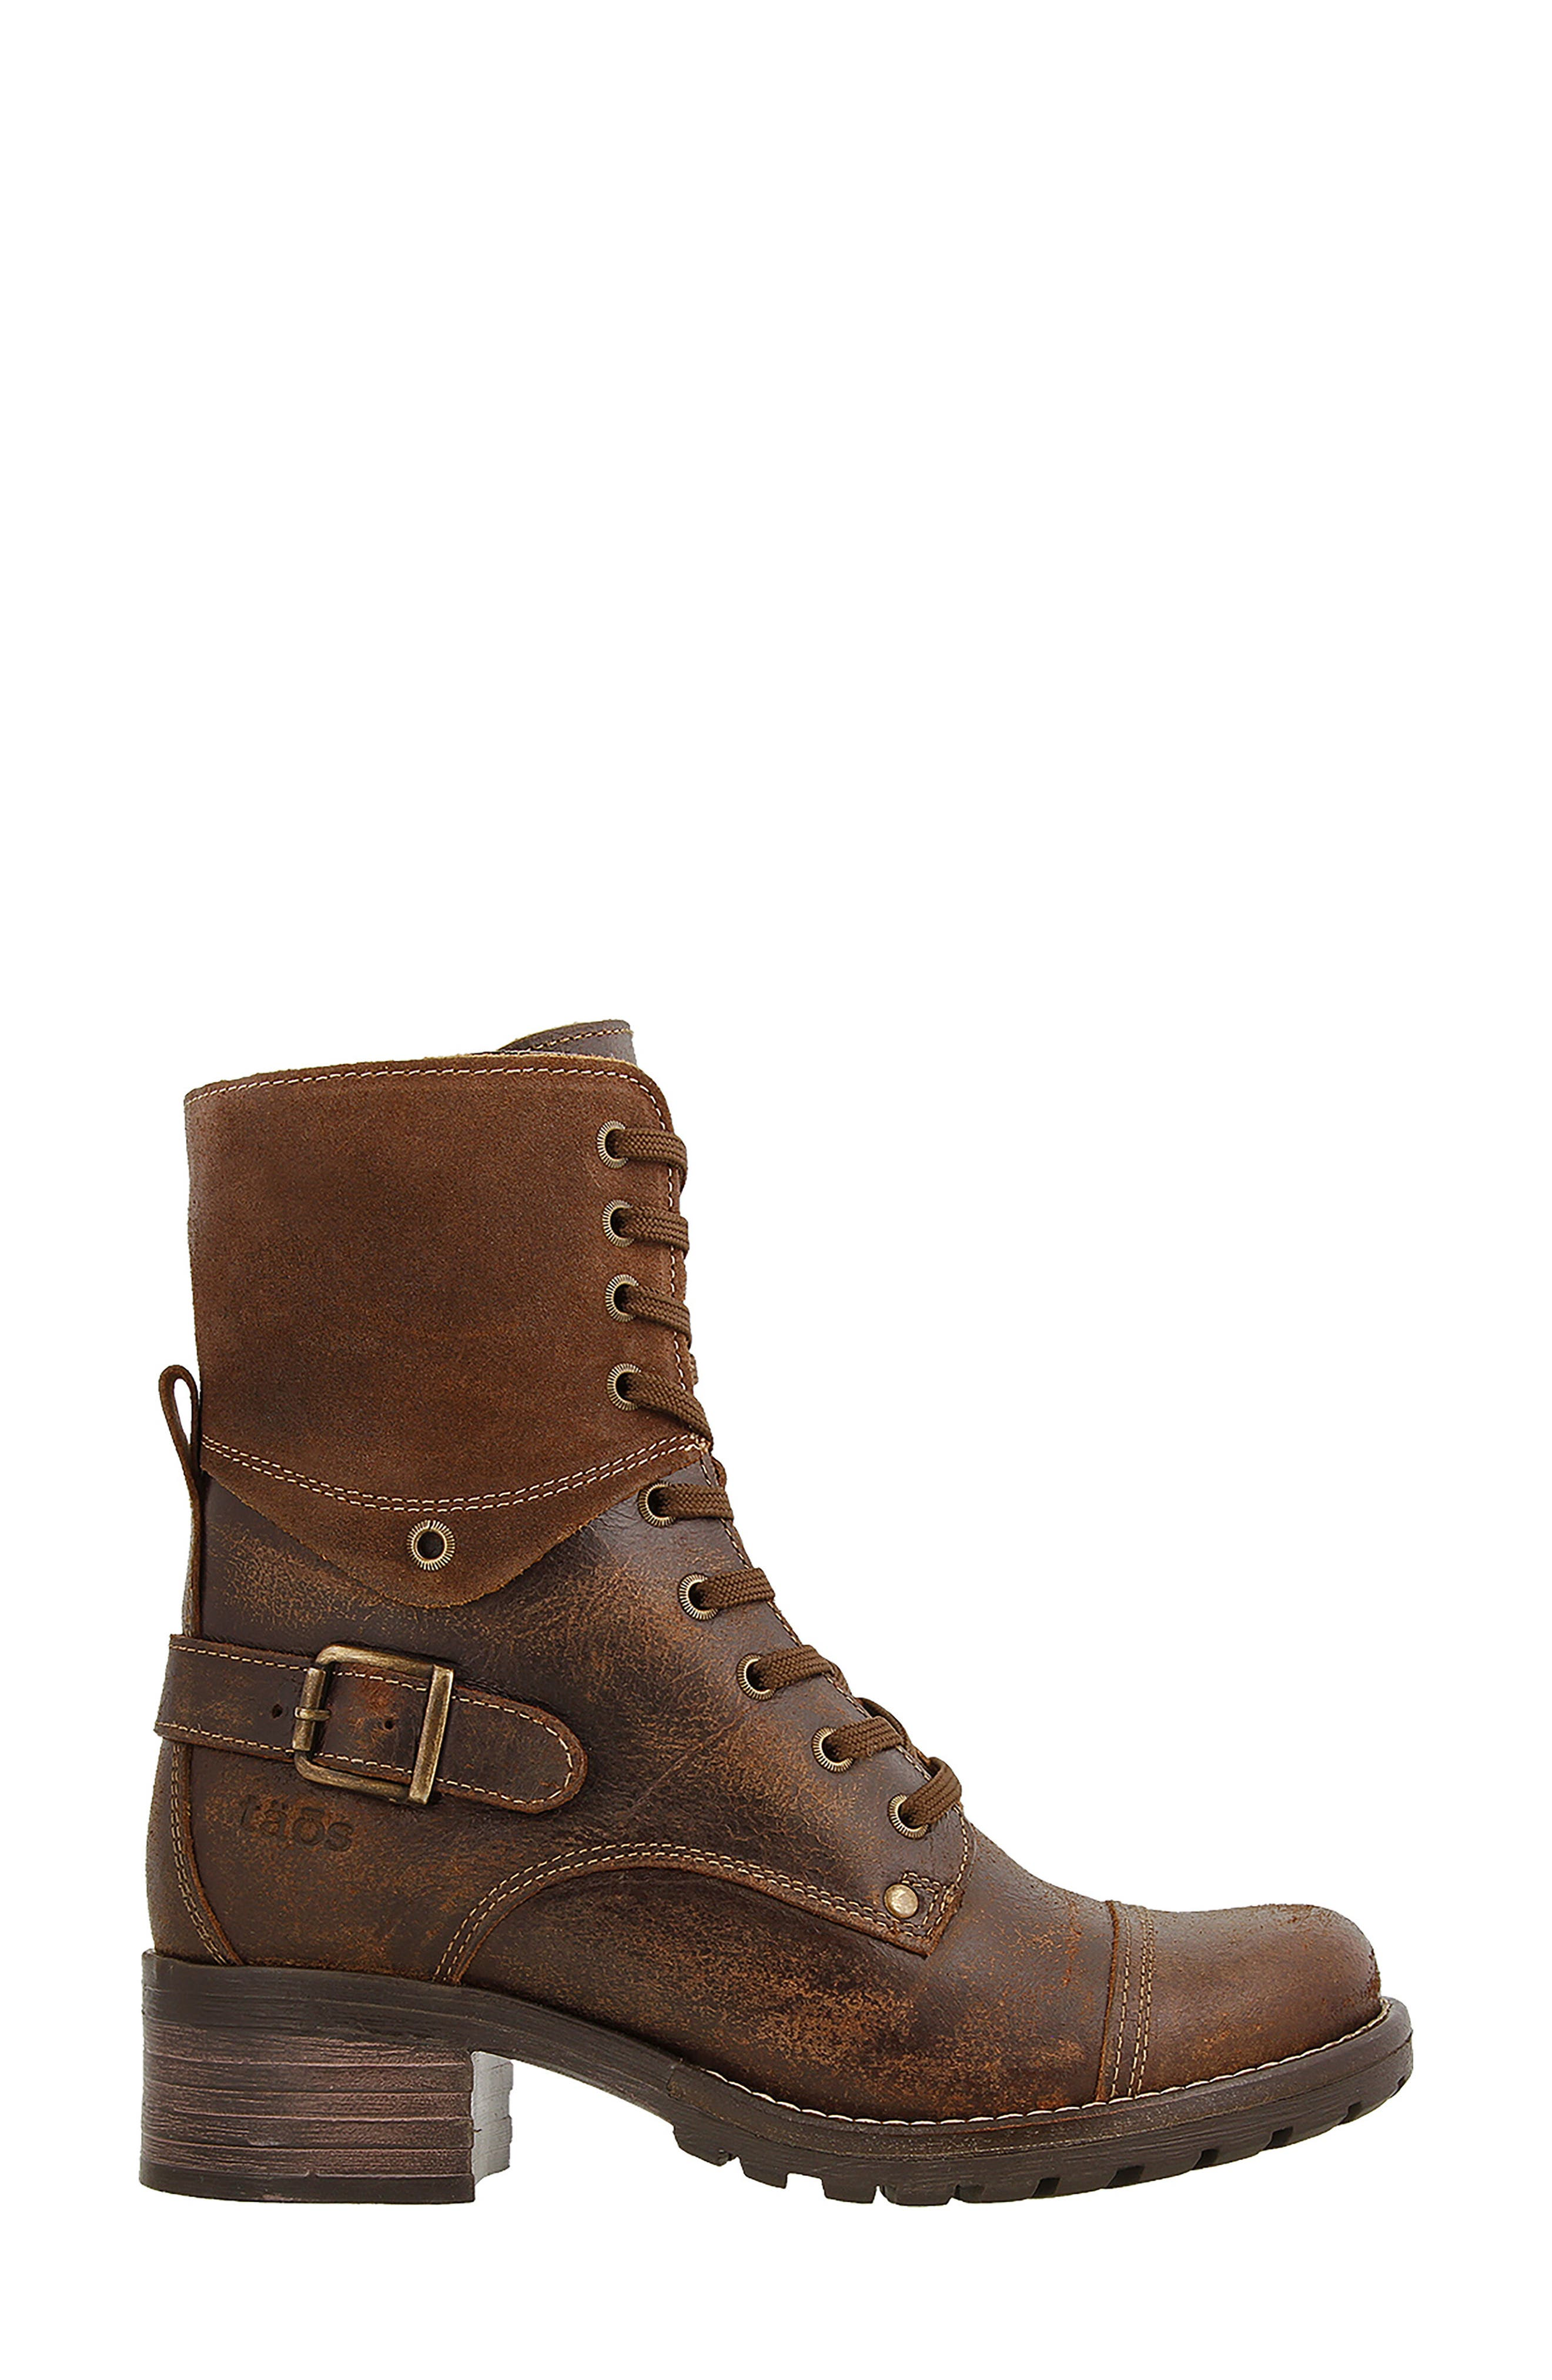 Crave Boot,                             Alternate thumbnail 3, color,                             Brown Leather